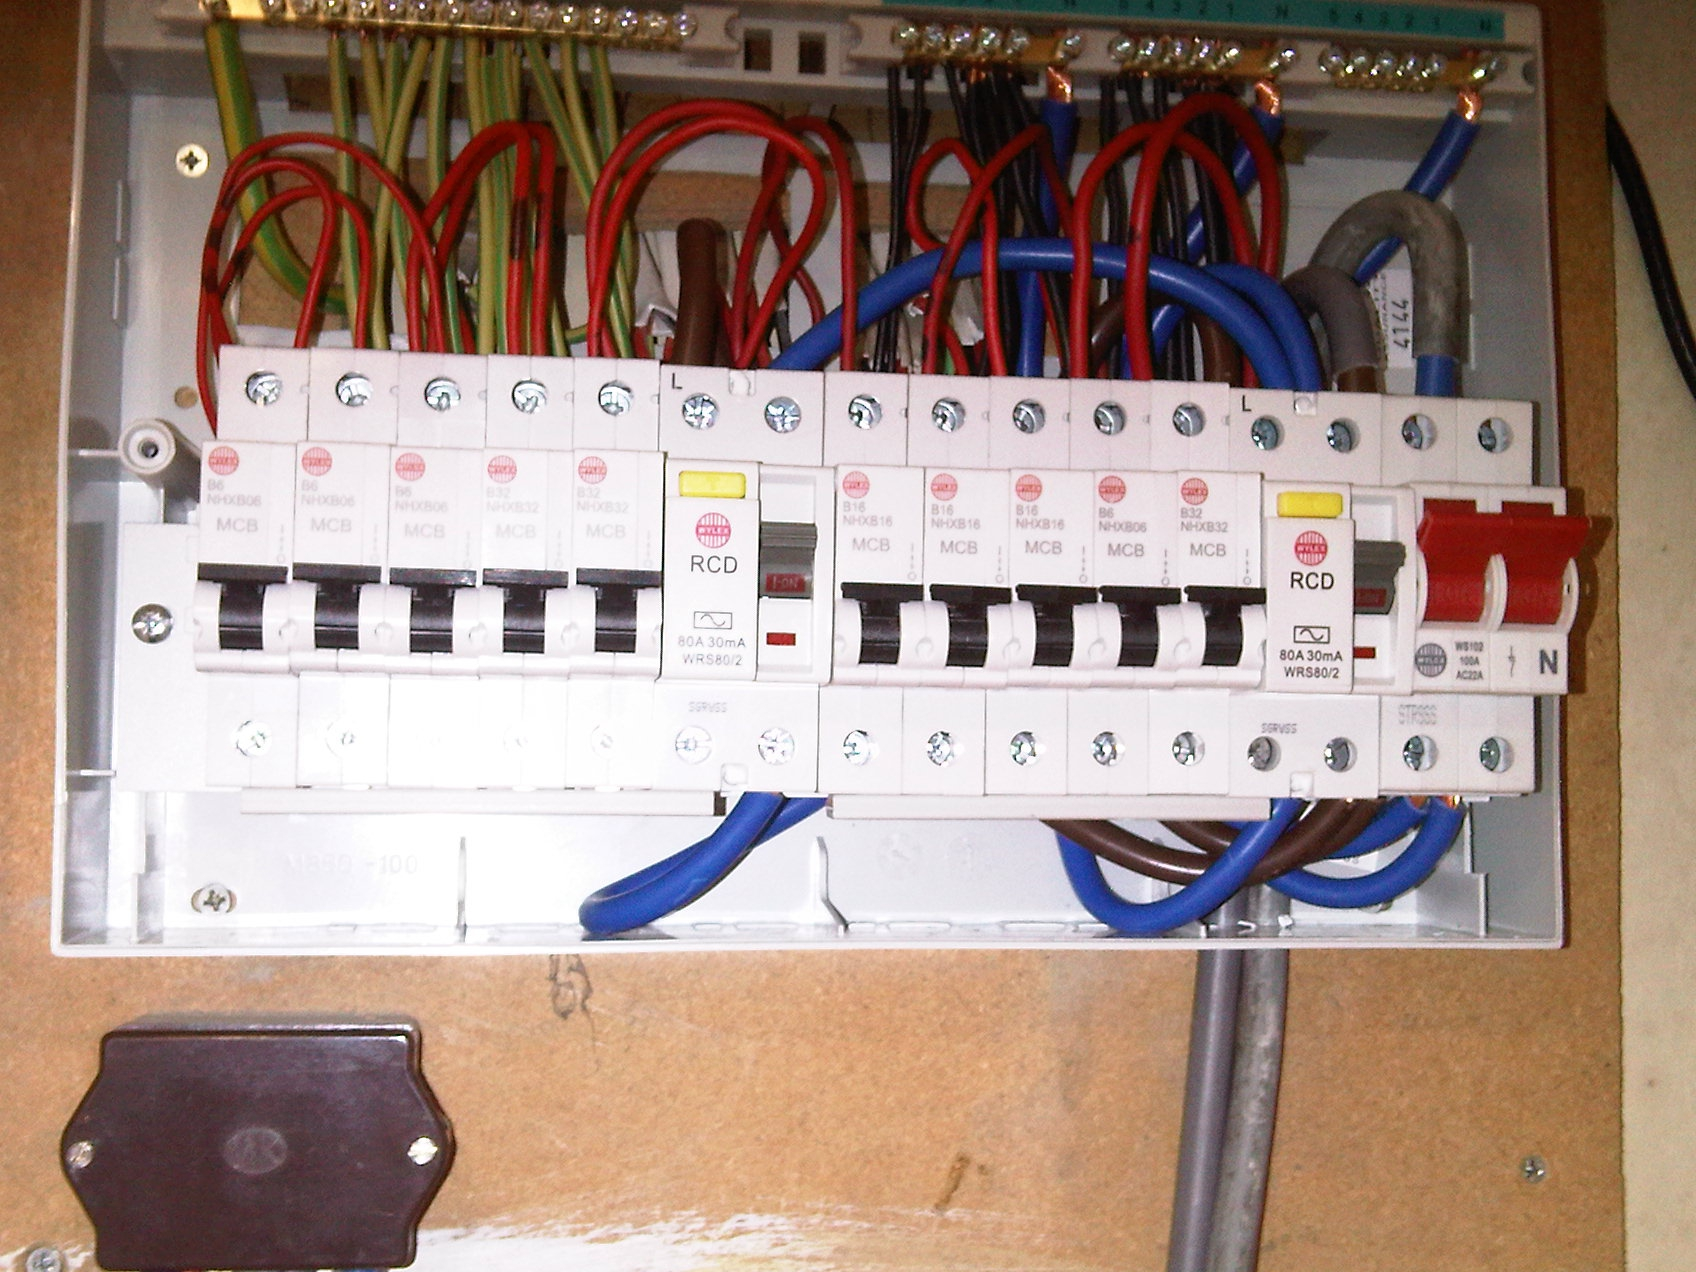 Fusebox 4 mk repair centre notices & news electricity fuse box keeps tripping at bakdesigns.co